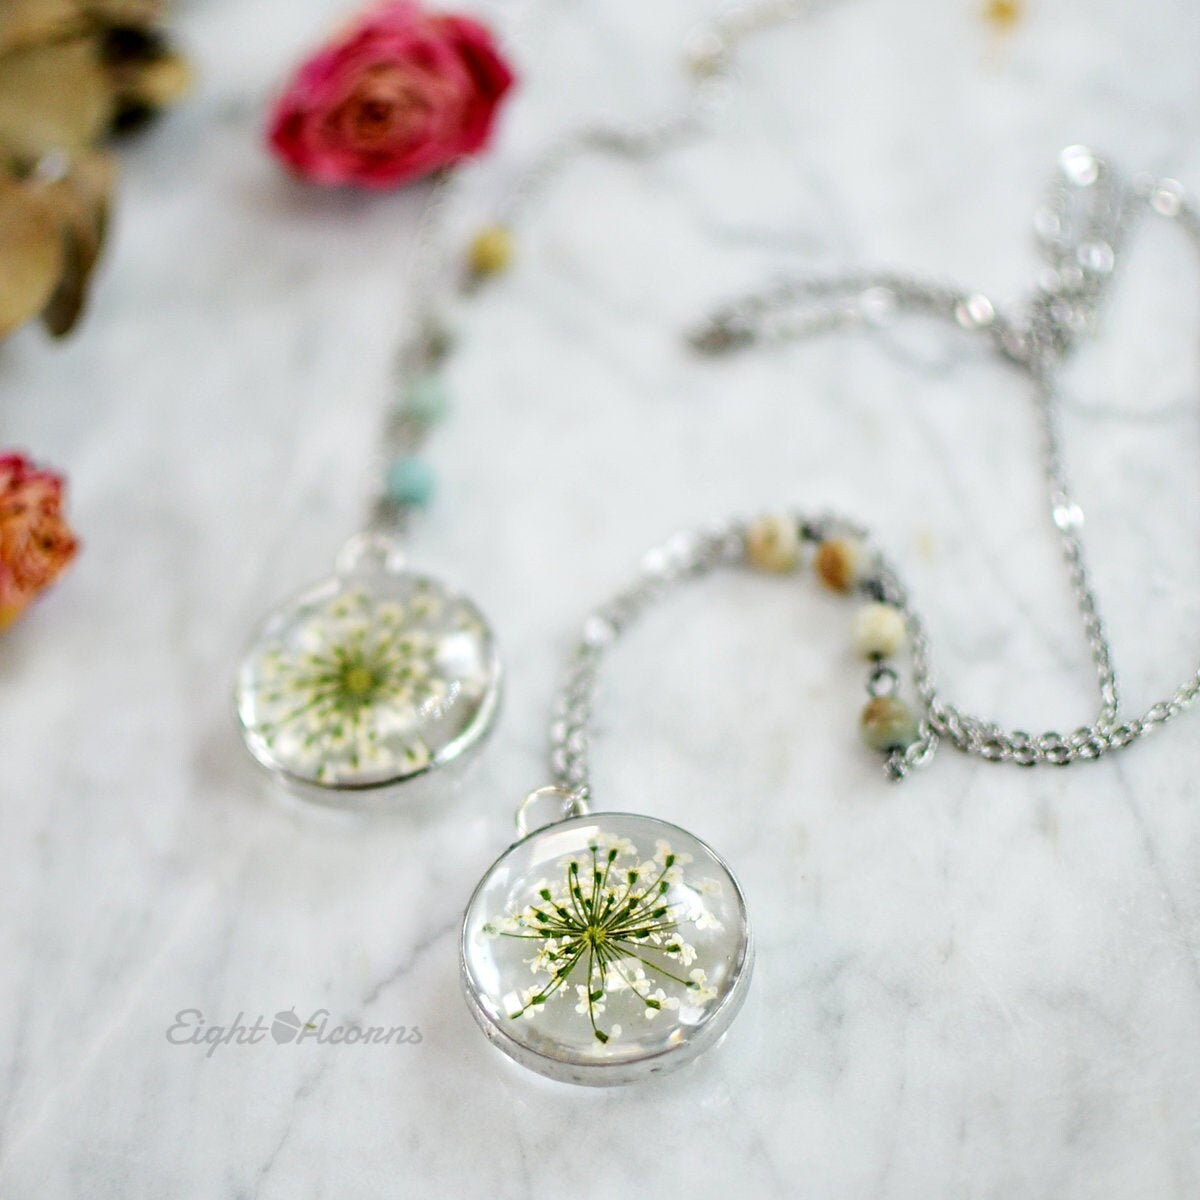 Real Queen Anne/'s Lace Dried Flowers /& Painted Glass Cherry Blossom Necklace